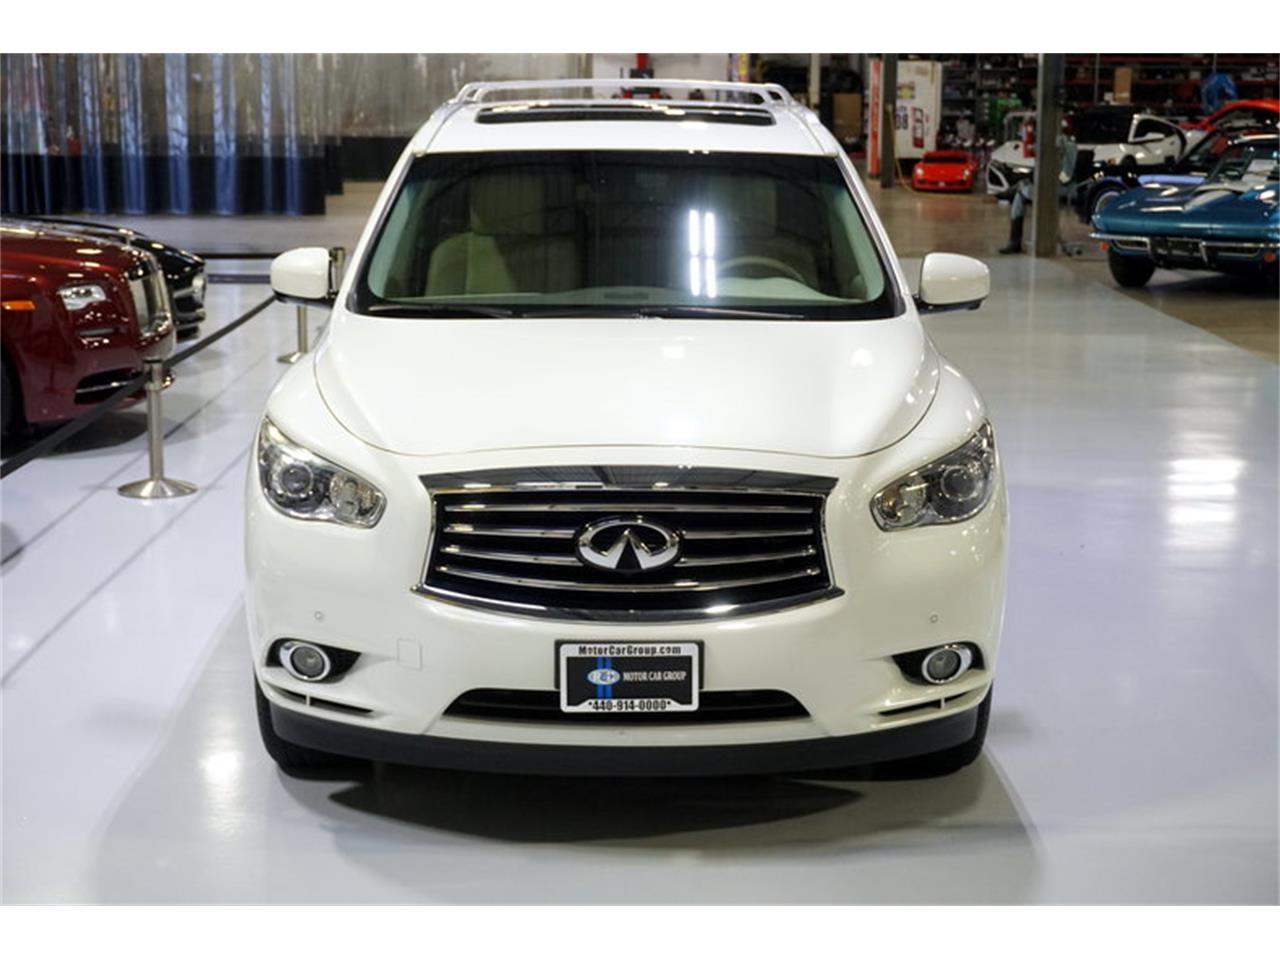 Large Picture of 2014 Infiniti QX60 - $28,990.00 - MD5Q